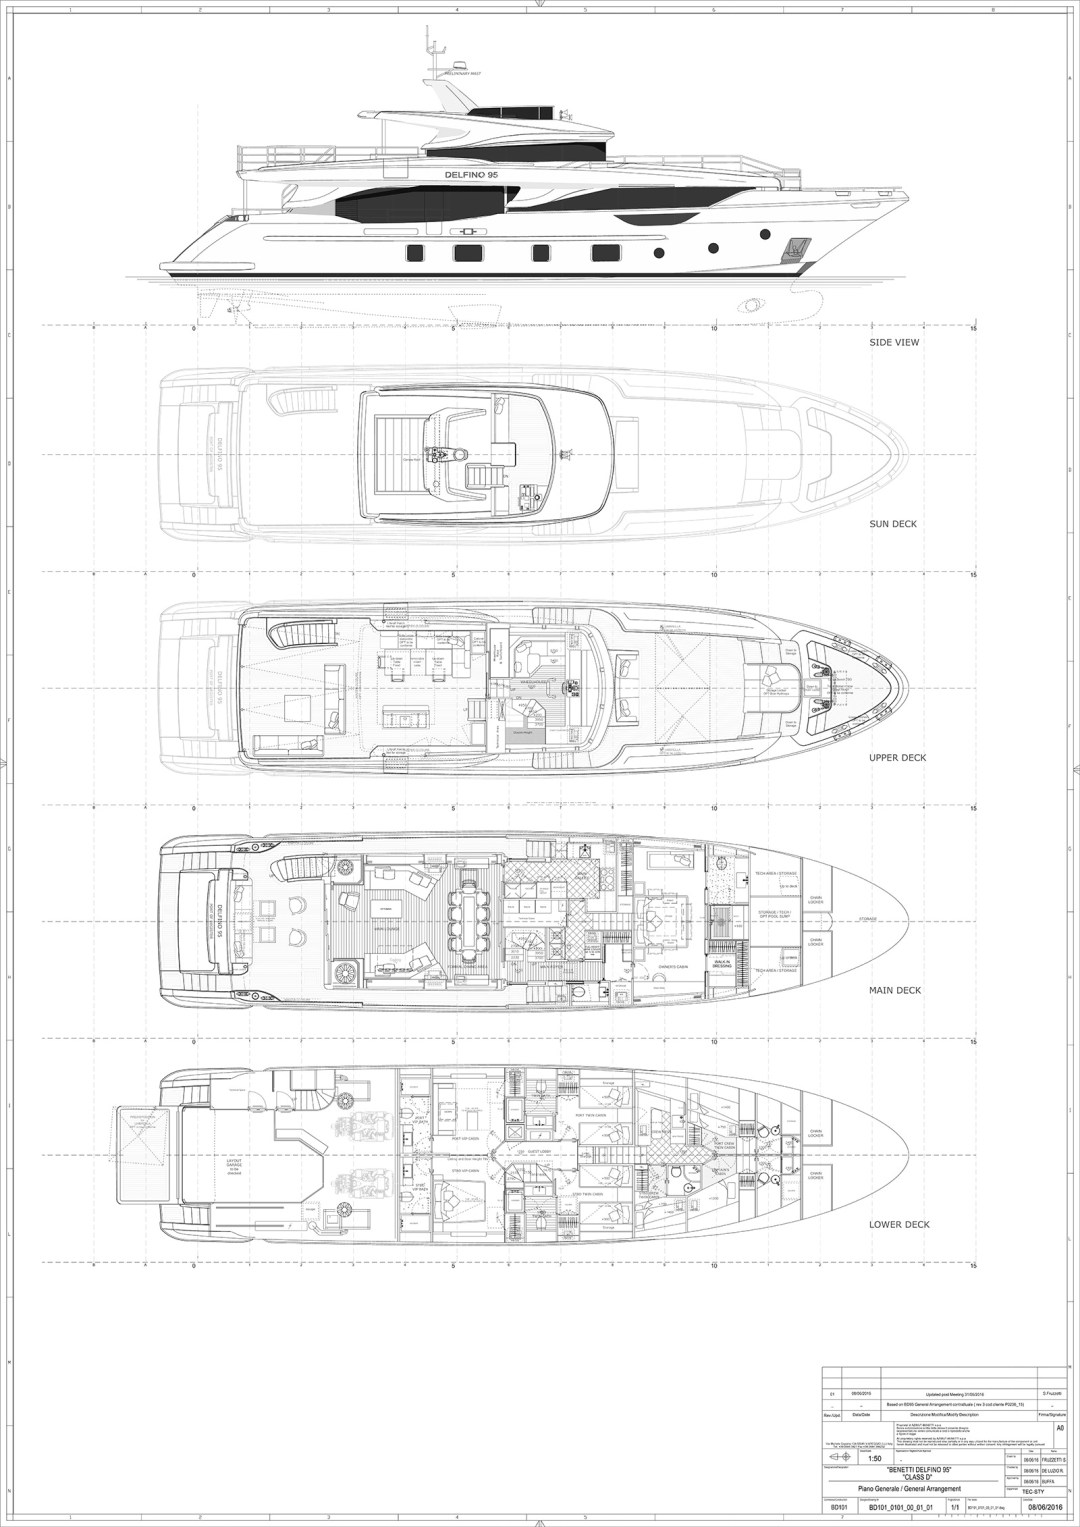 Benetti-Delfino-95-General-Arrangement-Diagram-Layout